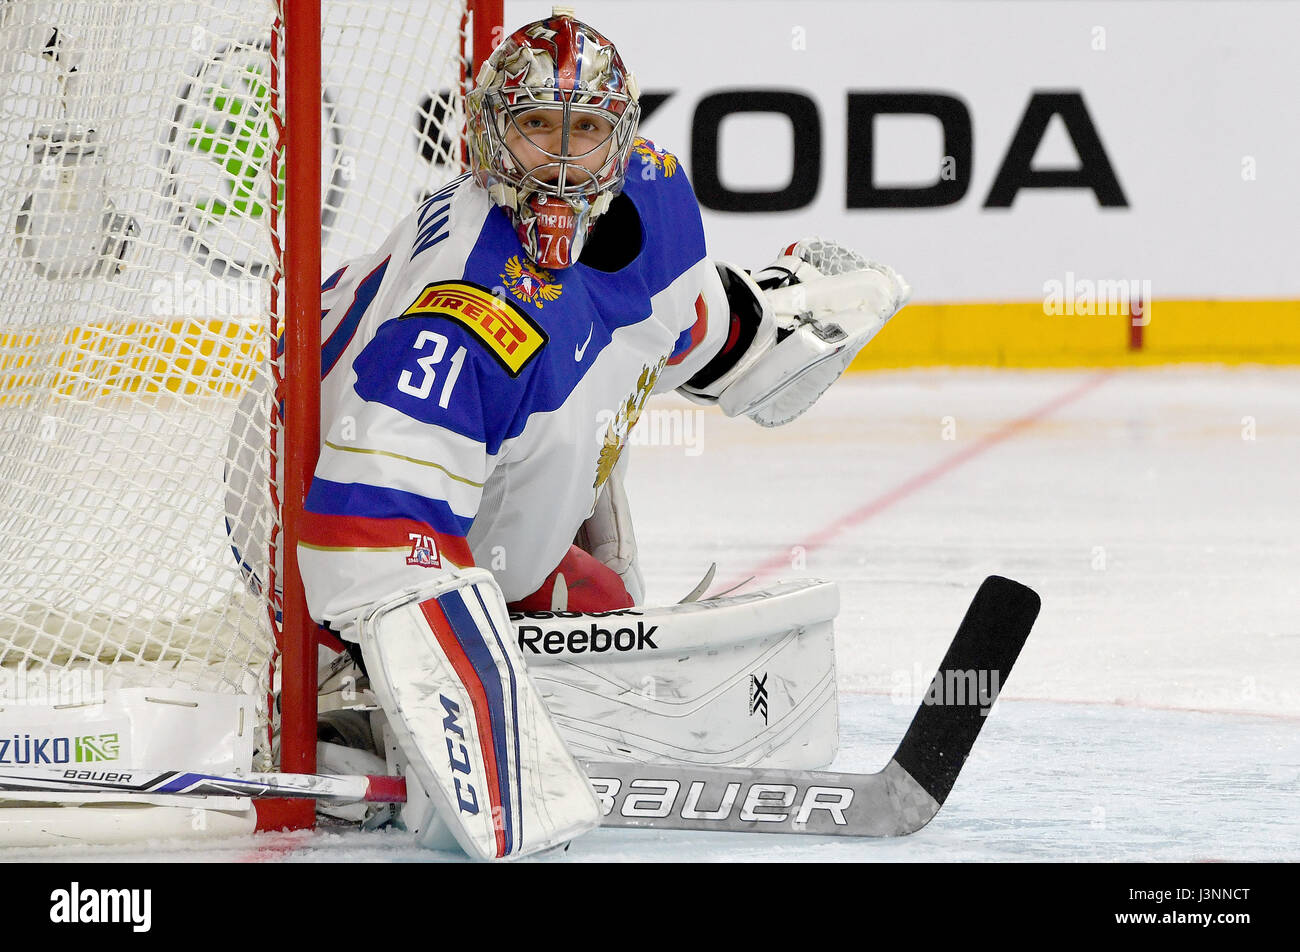 Russian Goalkeeper Stock Photos   Russian Goalkeeper Stock Images ... ca77ec9df